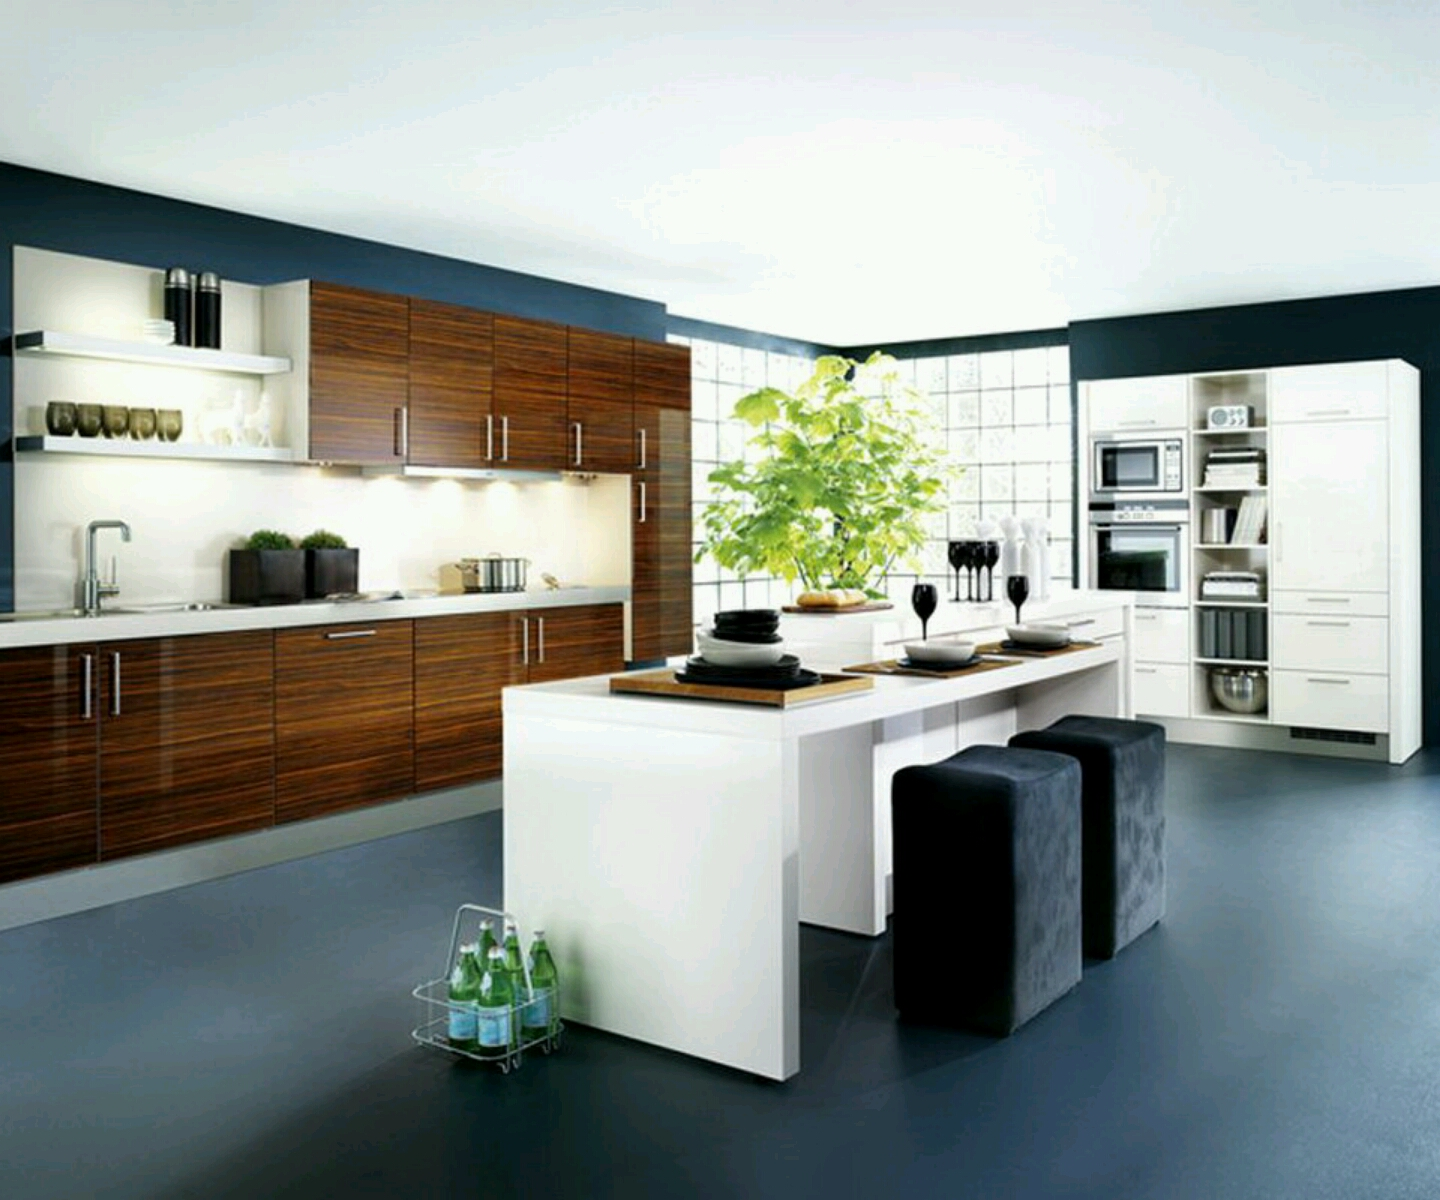 New home designs latest kitchen cabinets designs modern Design for cabinet for kitchen